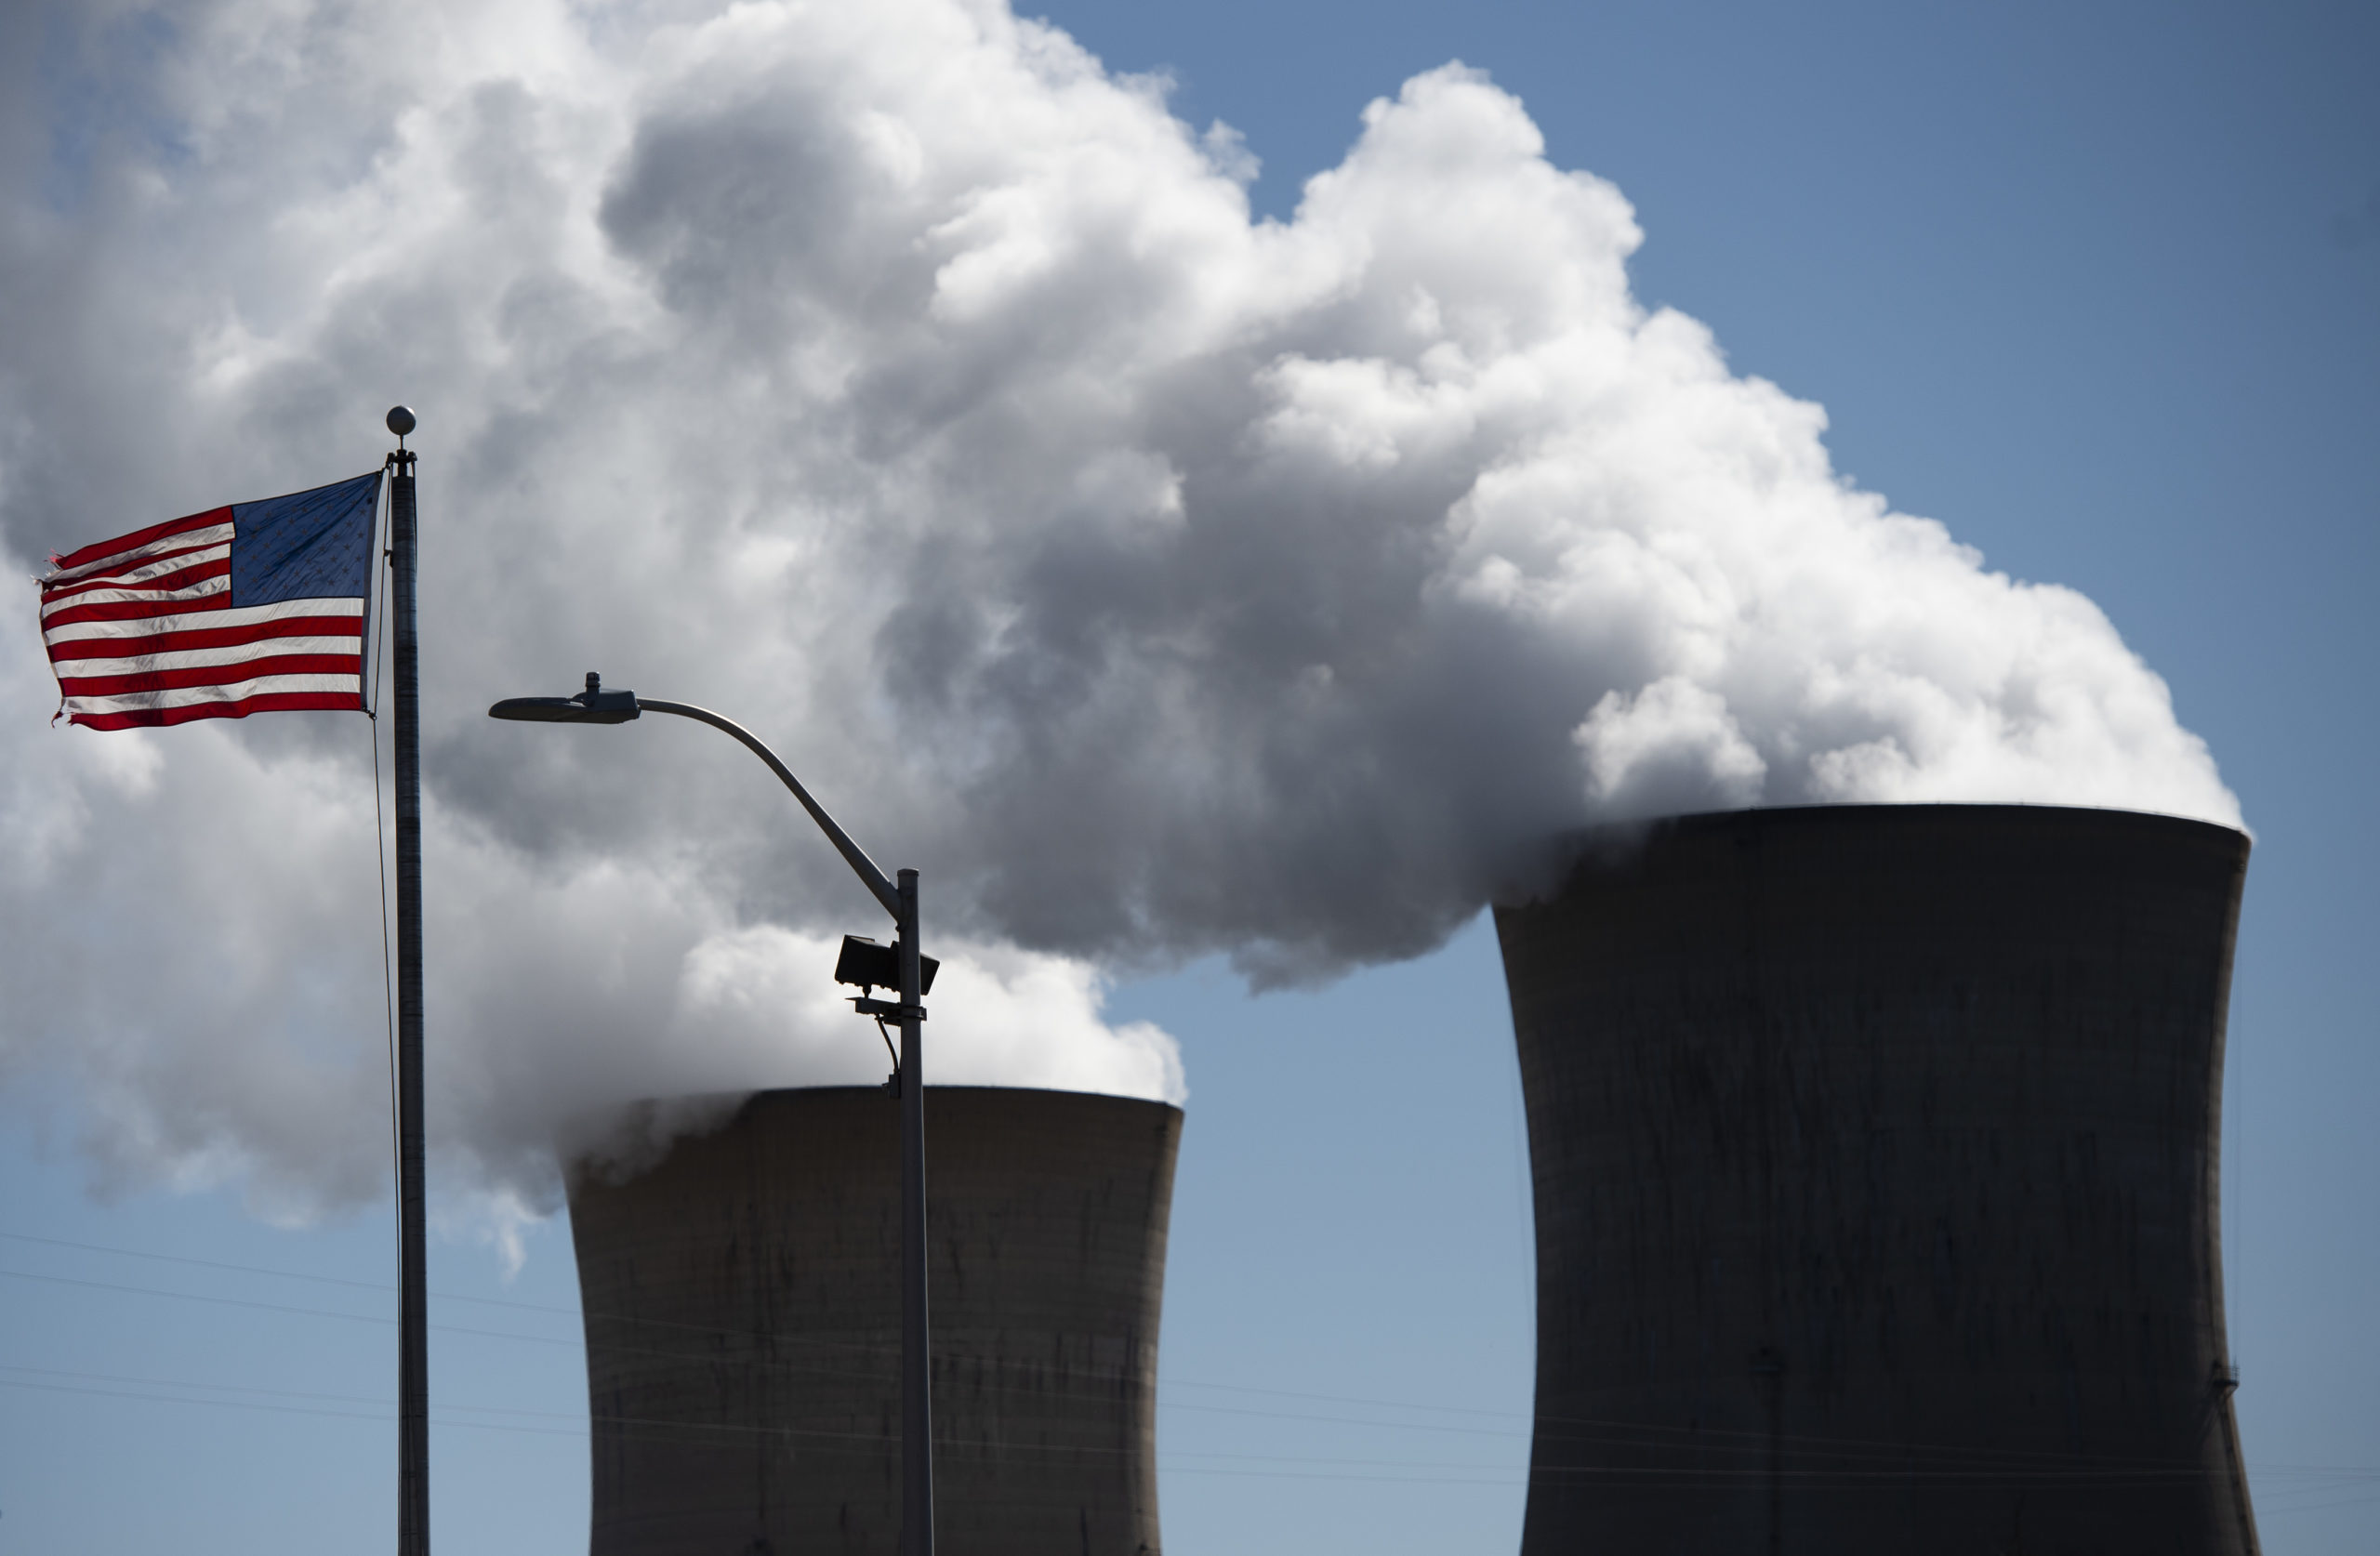 Steam rises out of the nuclear plant in Middletown, Pennsylvania on March 26, 2019. (Andrew Caballero-Reynolds/AFP via Getty Images)